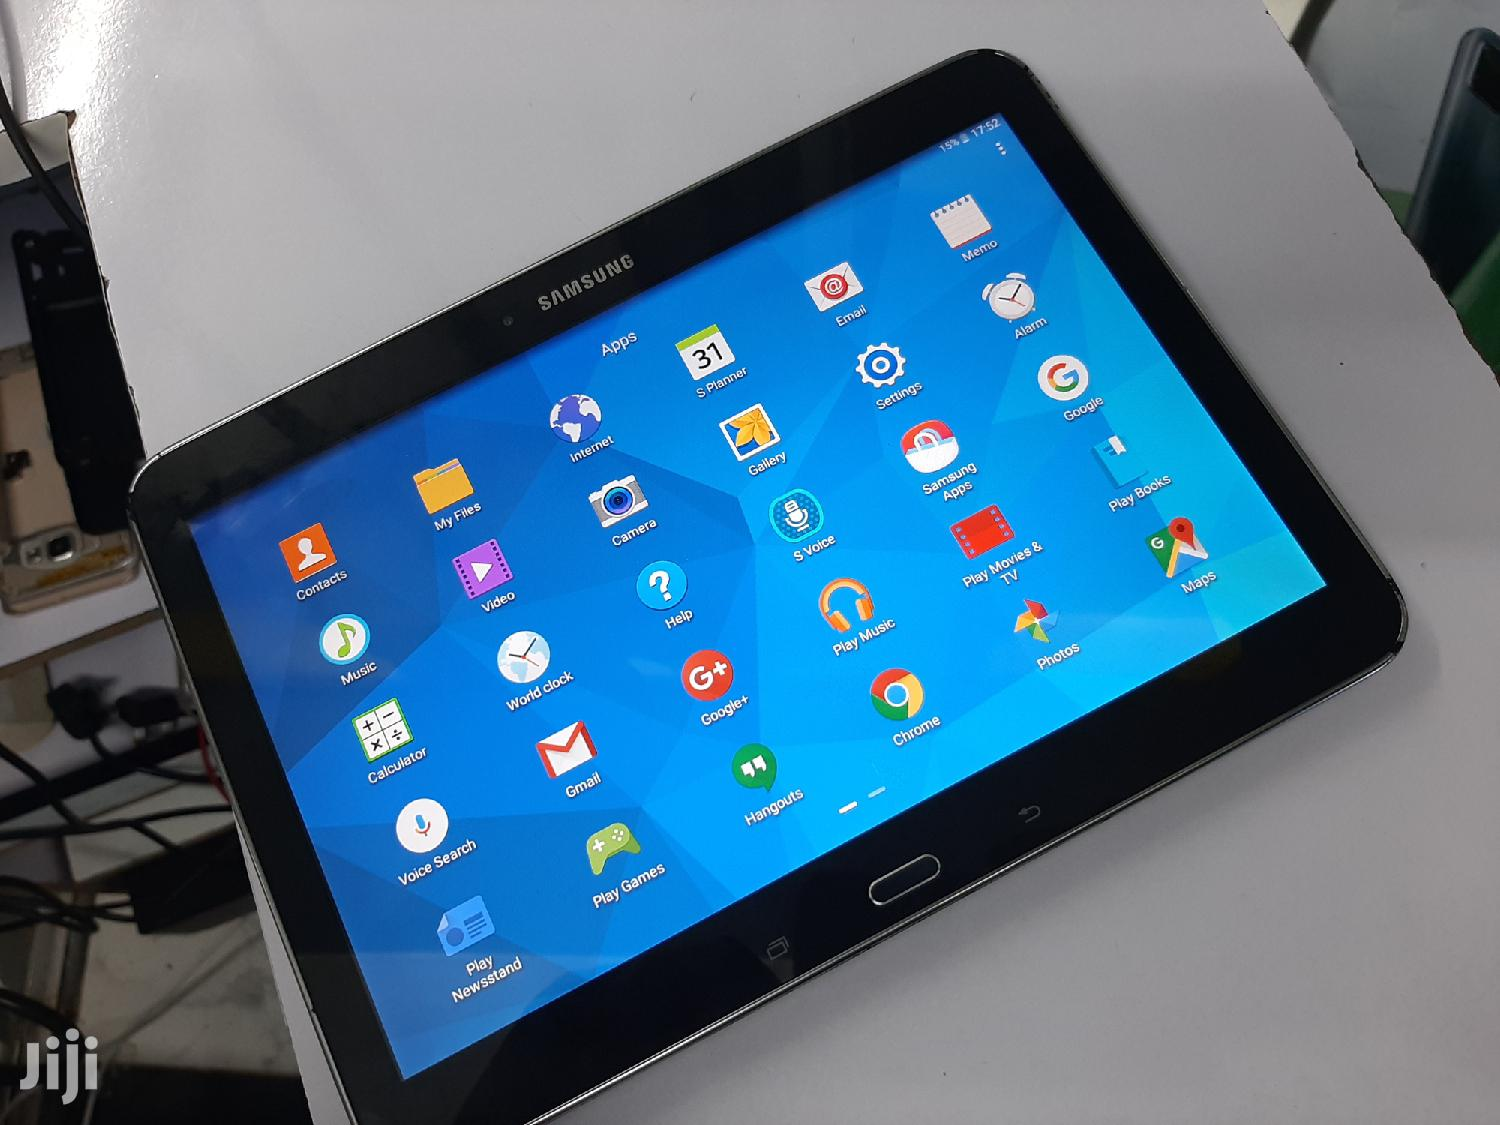 Samsung Galaxy Tab 4 10.1 16 GB | Tablets for sale in Nairobi Central, Nairobi, Kenya